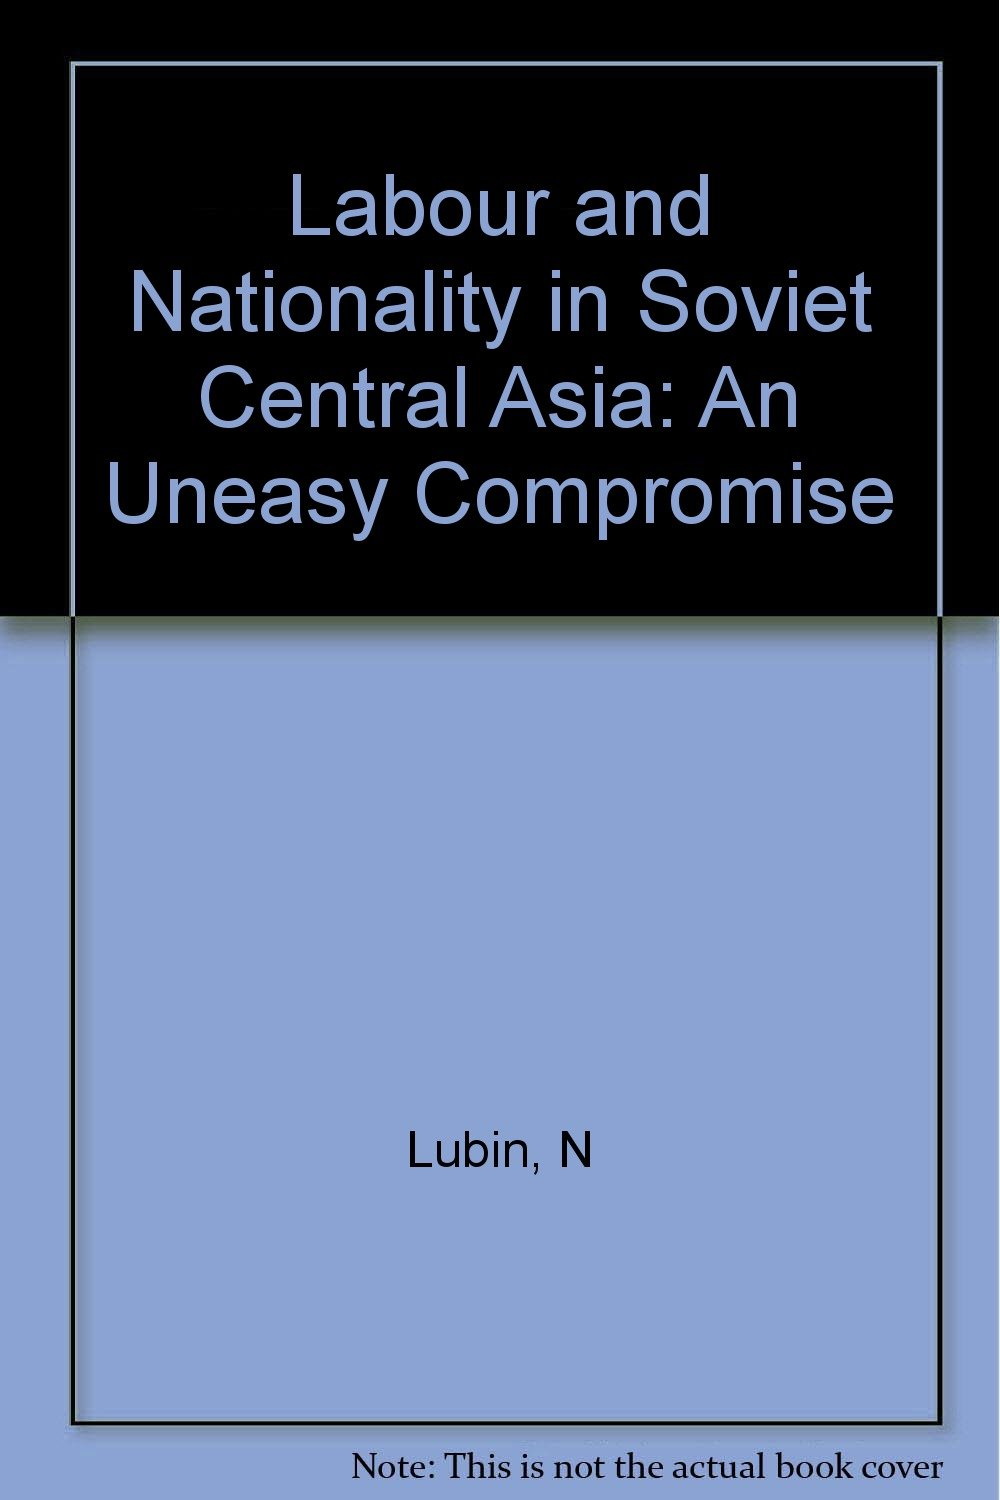 Labour and Nationality in Soviet Central Asia: An Uneasy Compromise